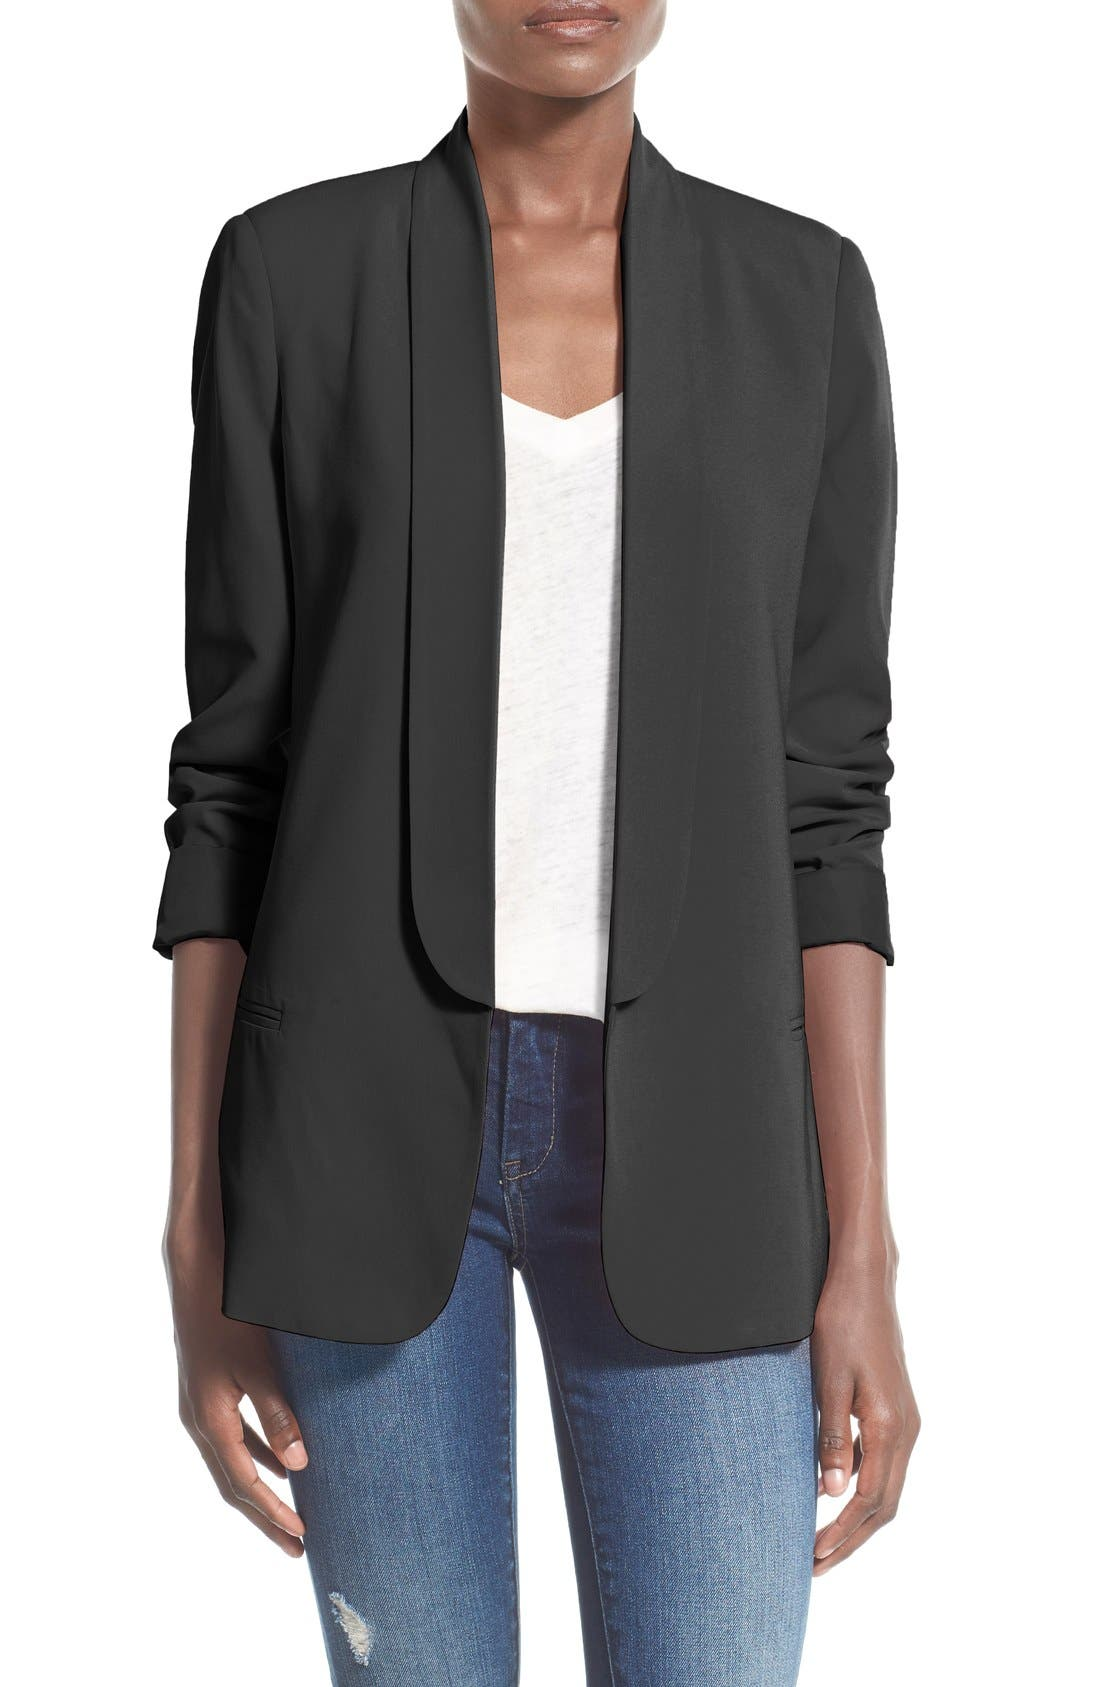 Blazers Wear To Where Looks For Every Occasion Women Nordstrom Elaine Teal Top Leux Studio L